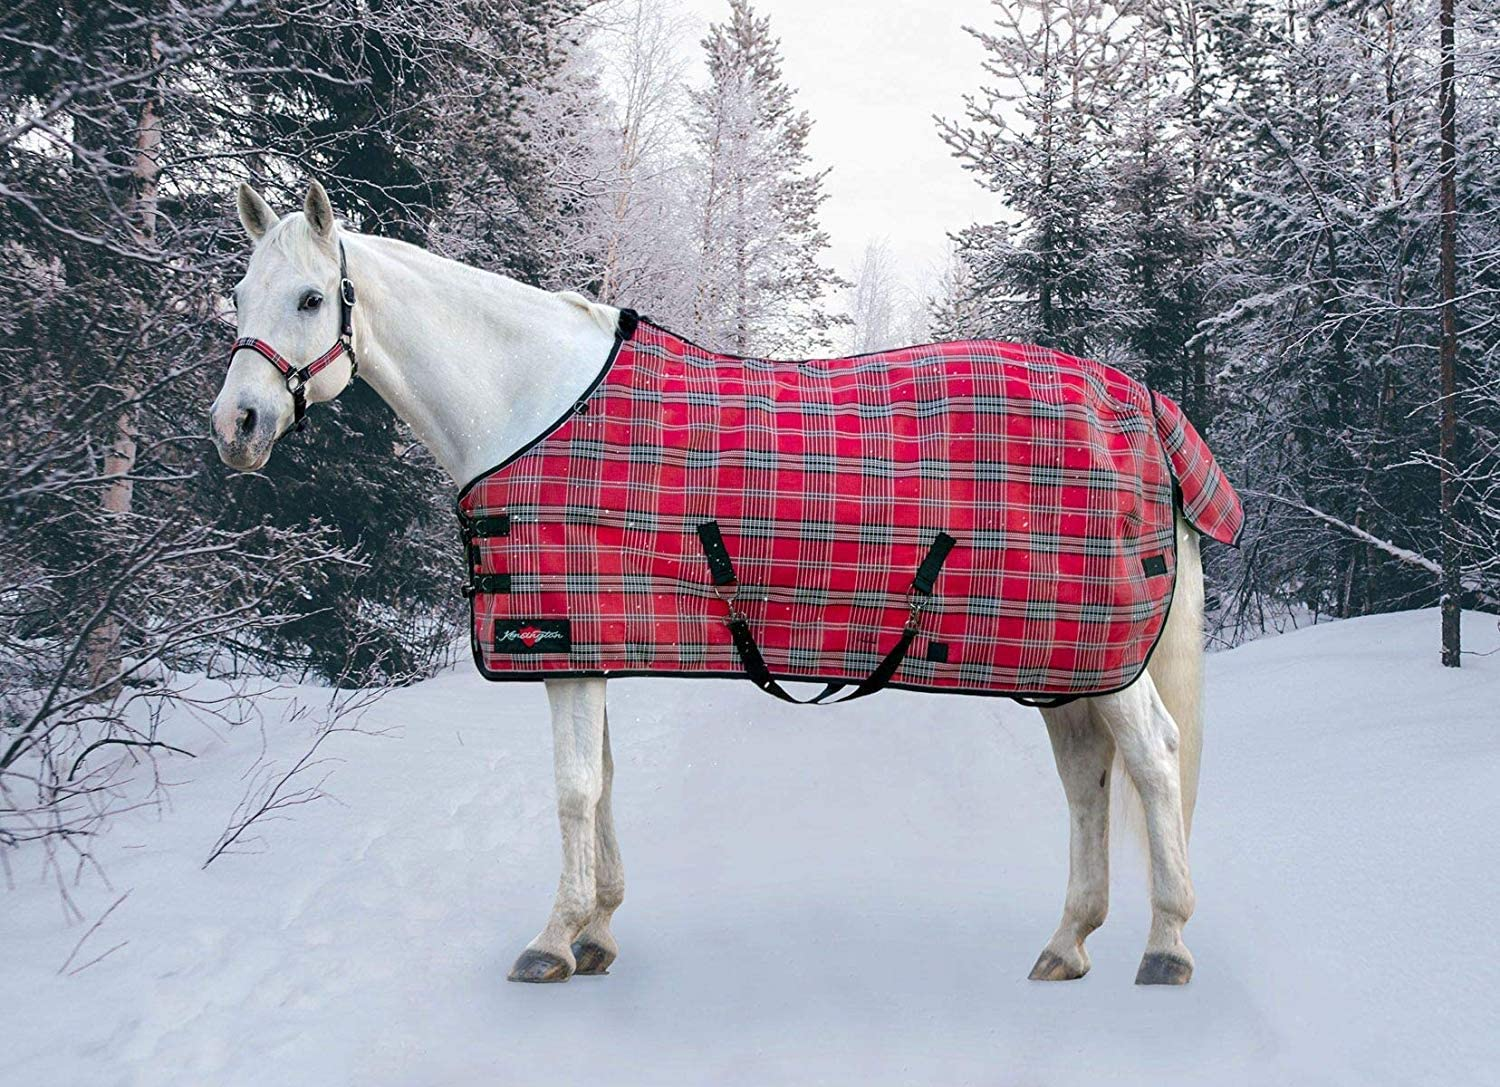 Breathable and Insulated Horse Turnout Rug for Your Horse /— Perfect for Sub-Zero Weather 300g SuperMesh Horse Turnout Blanket by Kensington /— Waterproof